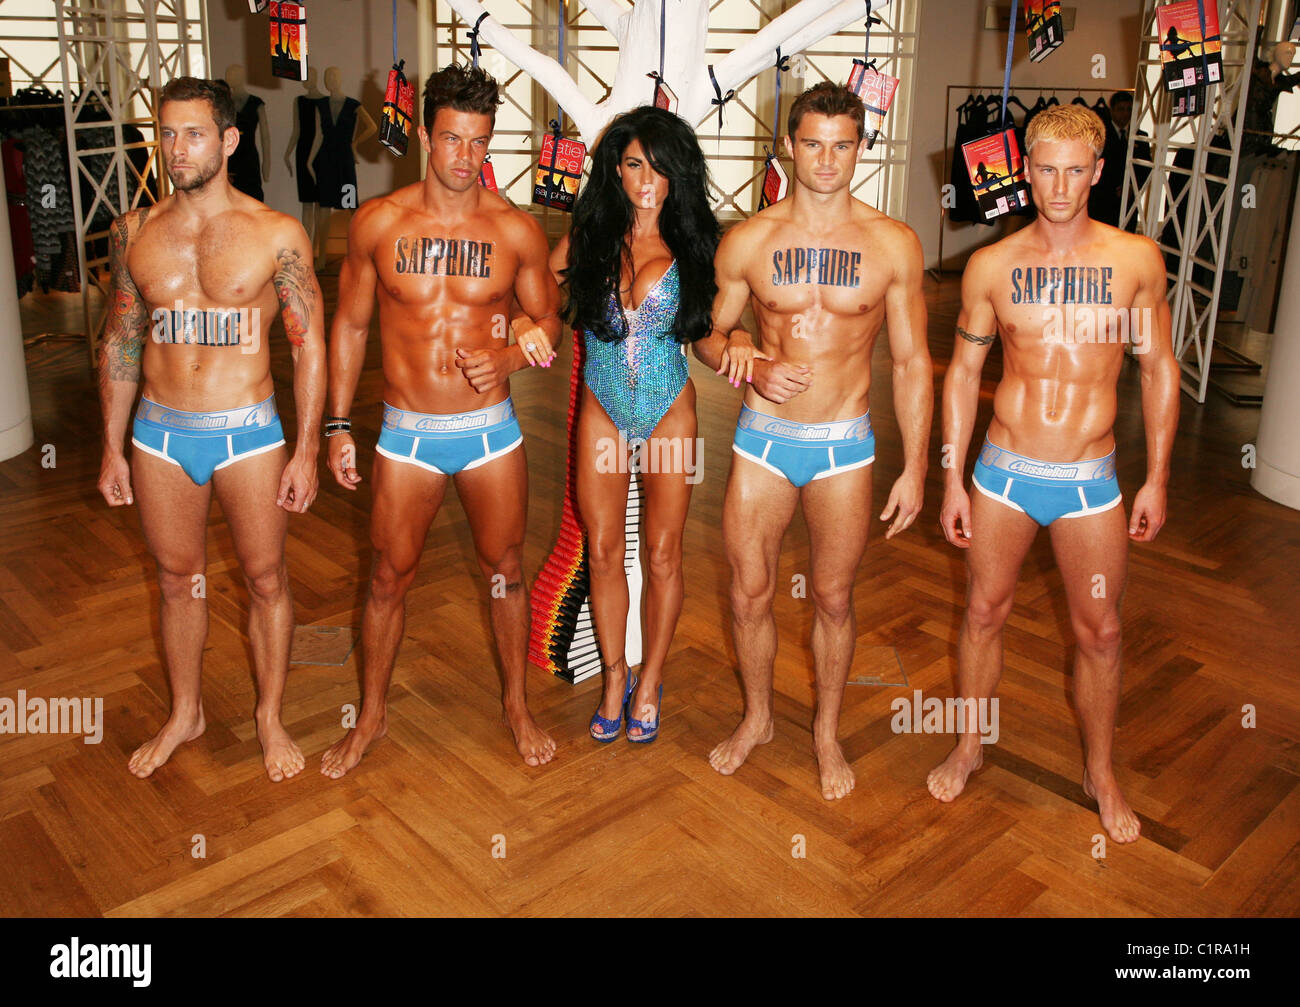 Culo probable Resplandor  Page 2 - Katie Price Aka Jordan Signs High Resolution Stock Photography and  Images - Alamy